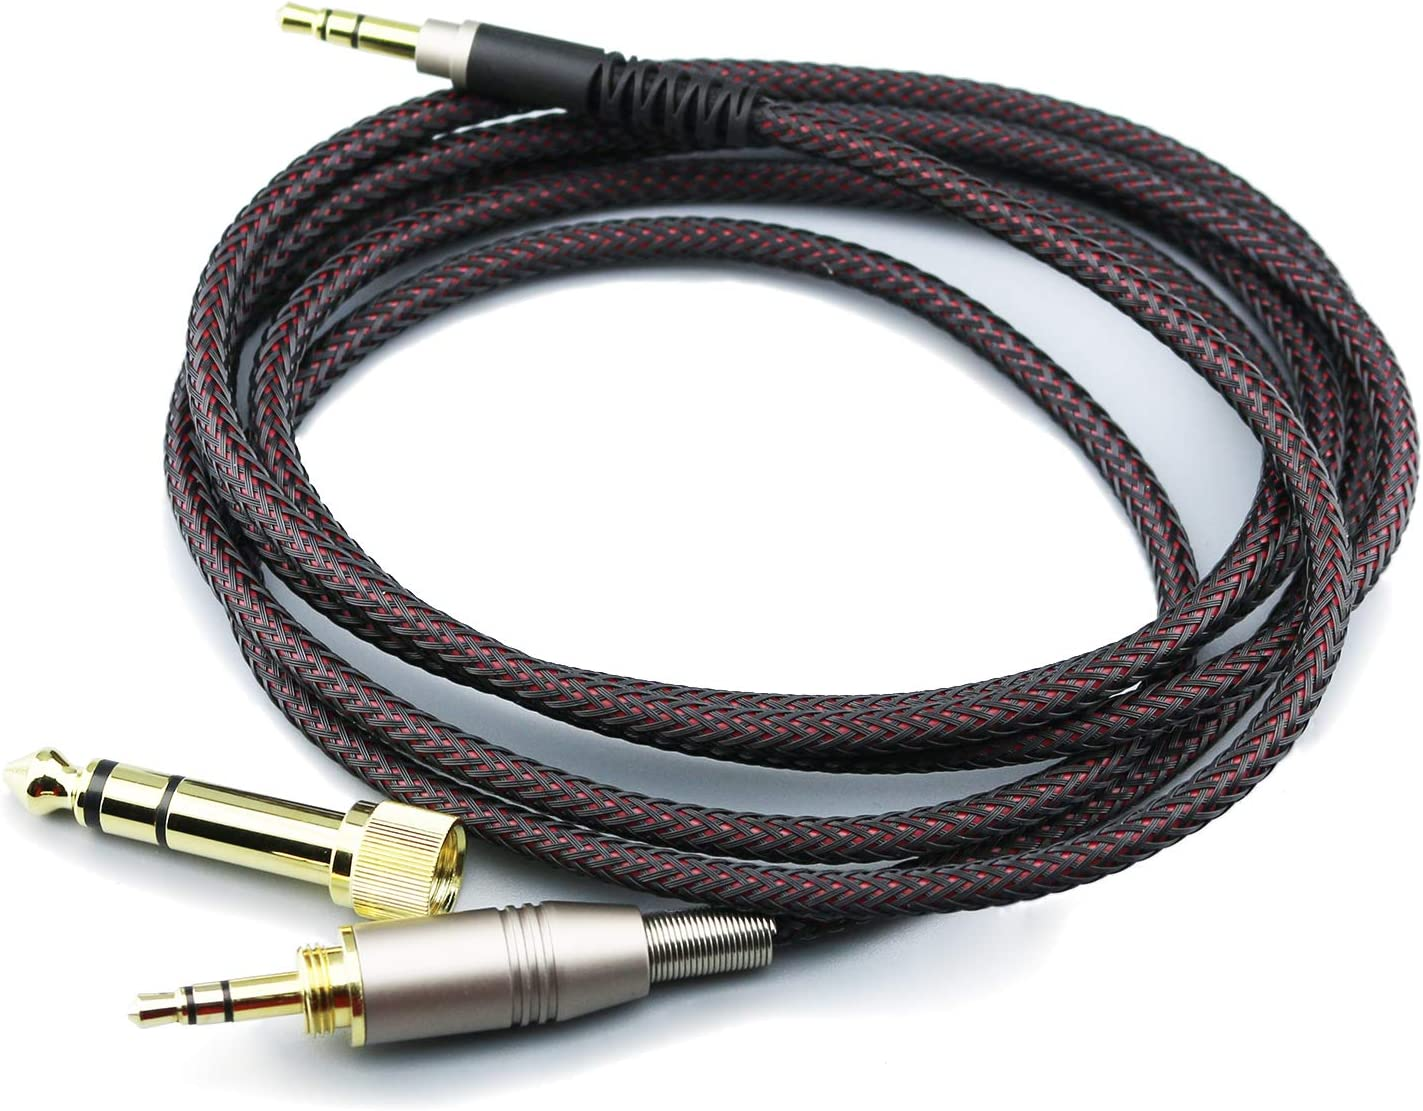 NewFantasia Replacement Audio Upgrade Cable Compatible with Audio-Technica ATH-M50xBT, ATH-AR3BTBK, ATH-SR50BT, ATH-ANC9, ATH-ANC7B, ATH-SR5BTBK, ATH-S700BT Headphones 1.5meters/4.9ft